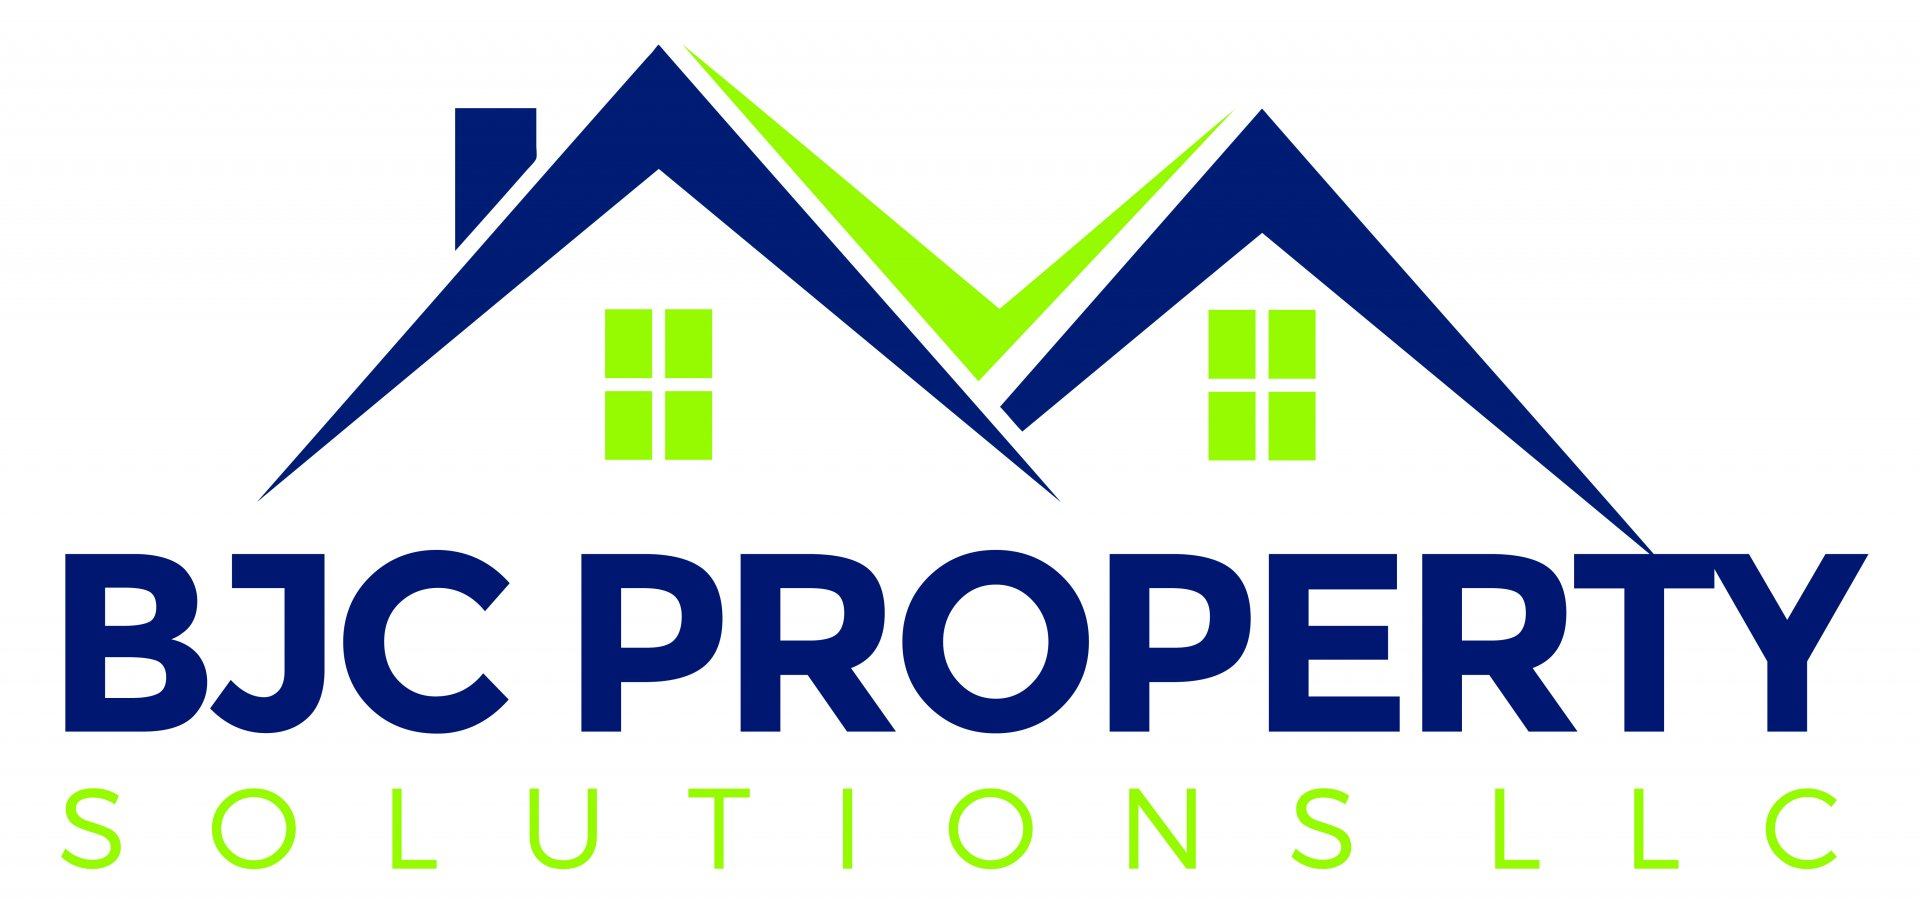 BJC Property Solutions logo